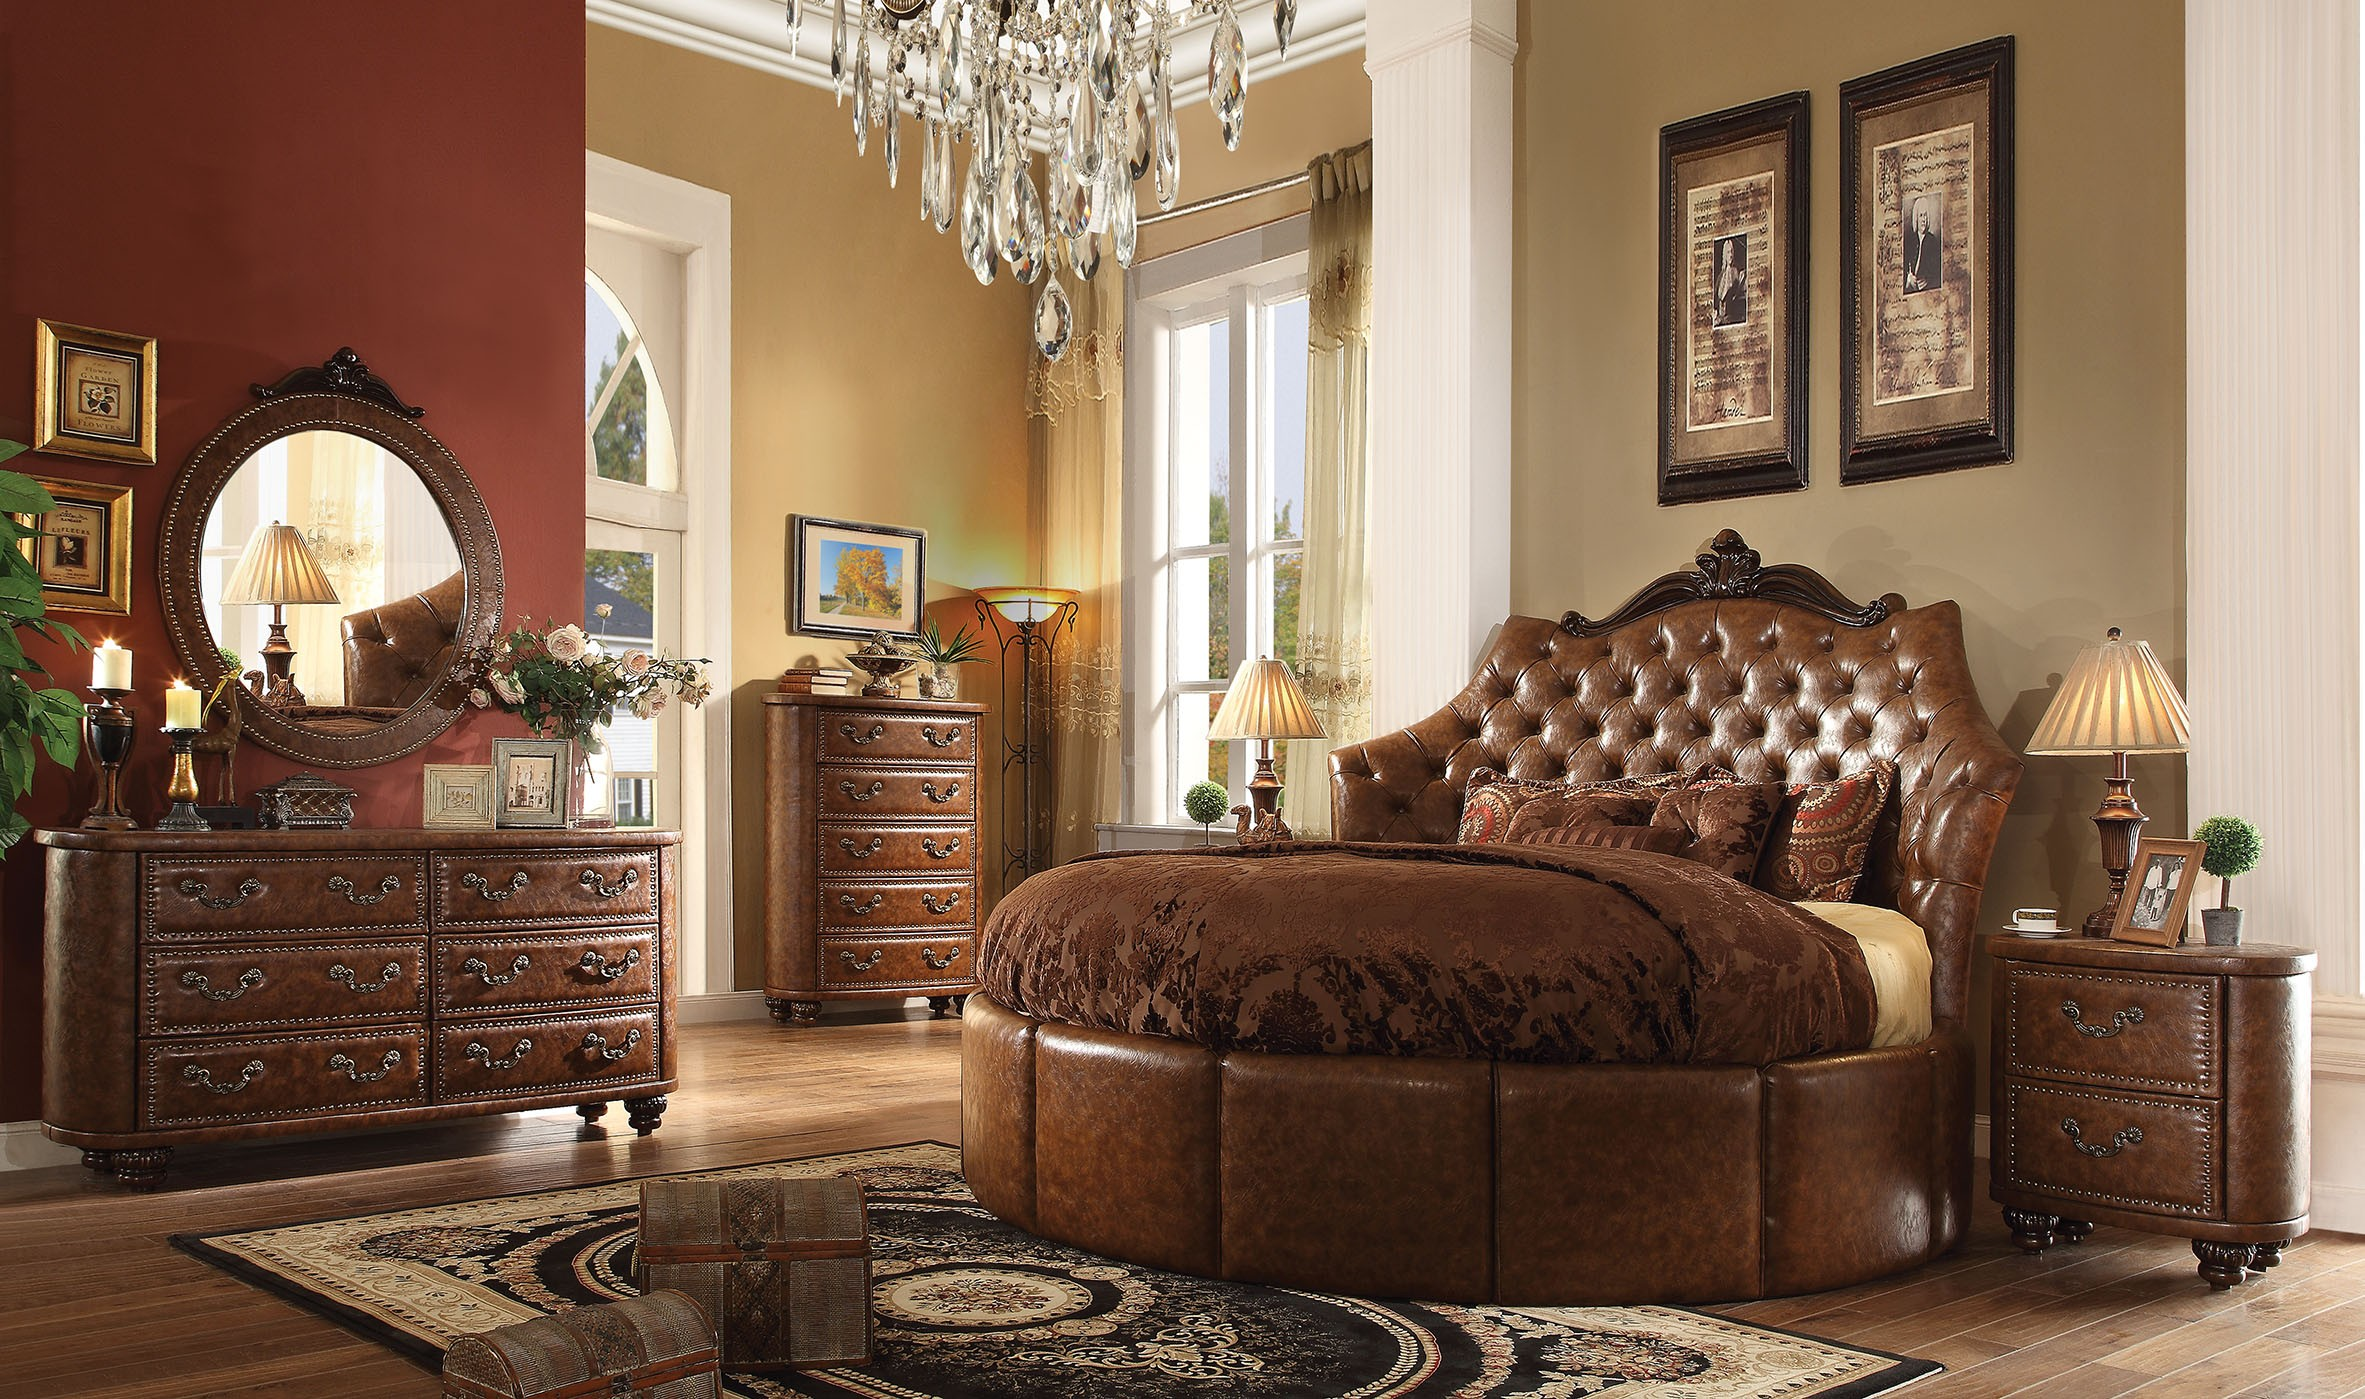 Chair King Houston Round Bedroom Sets Home Design